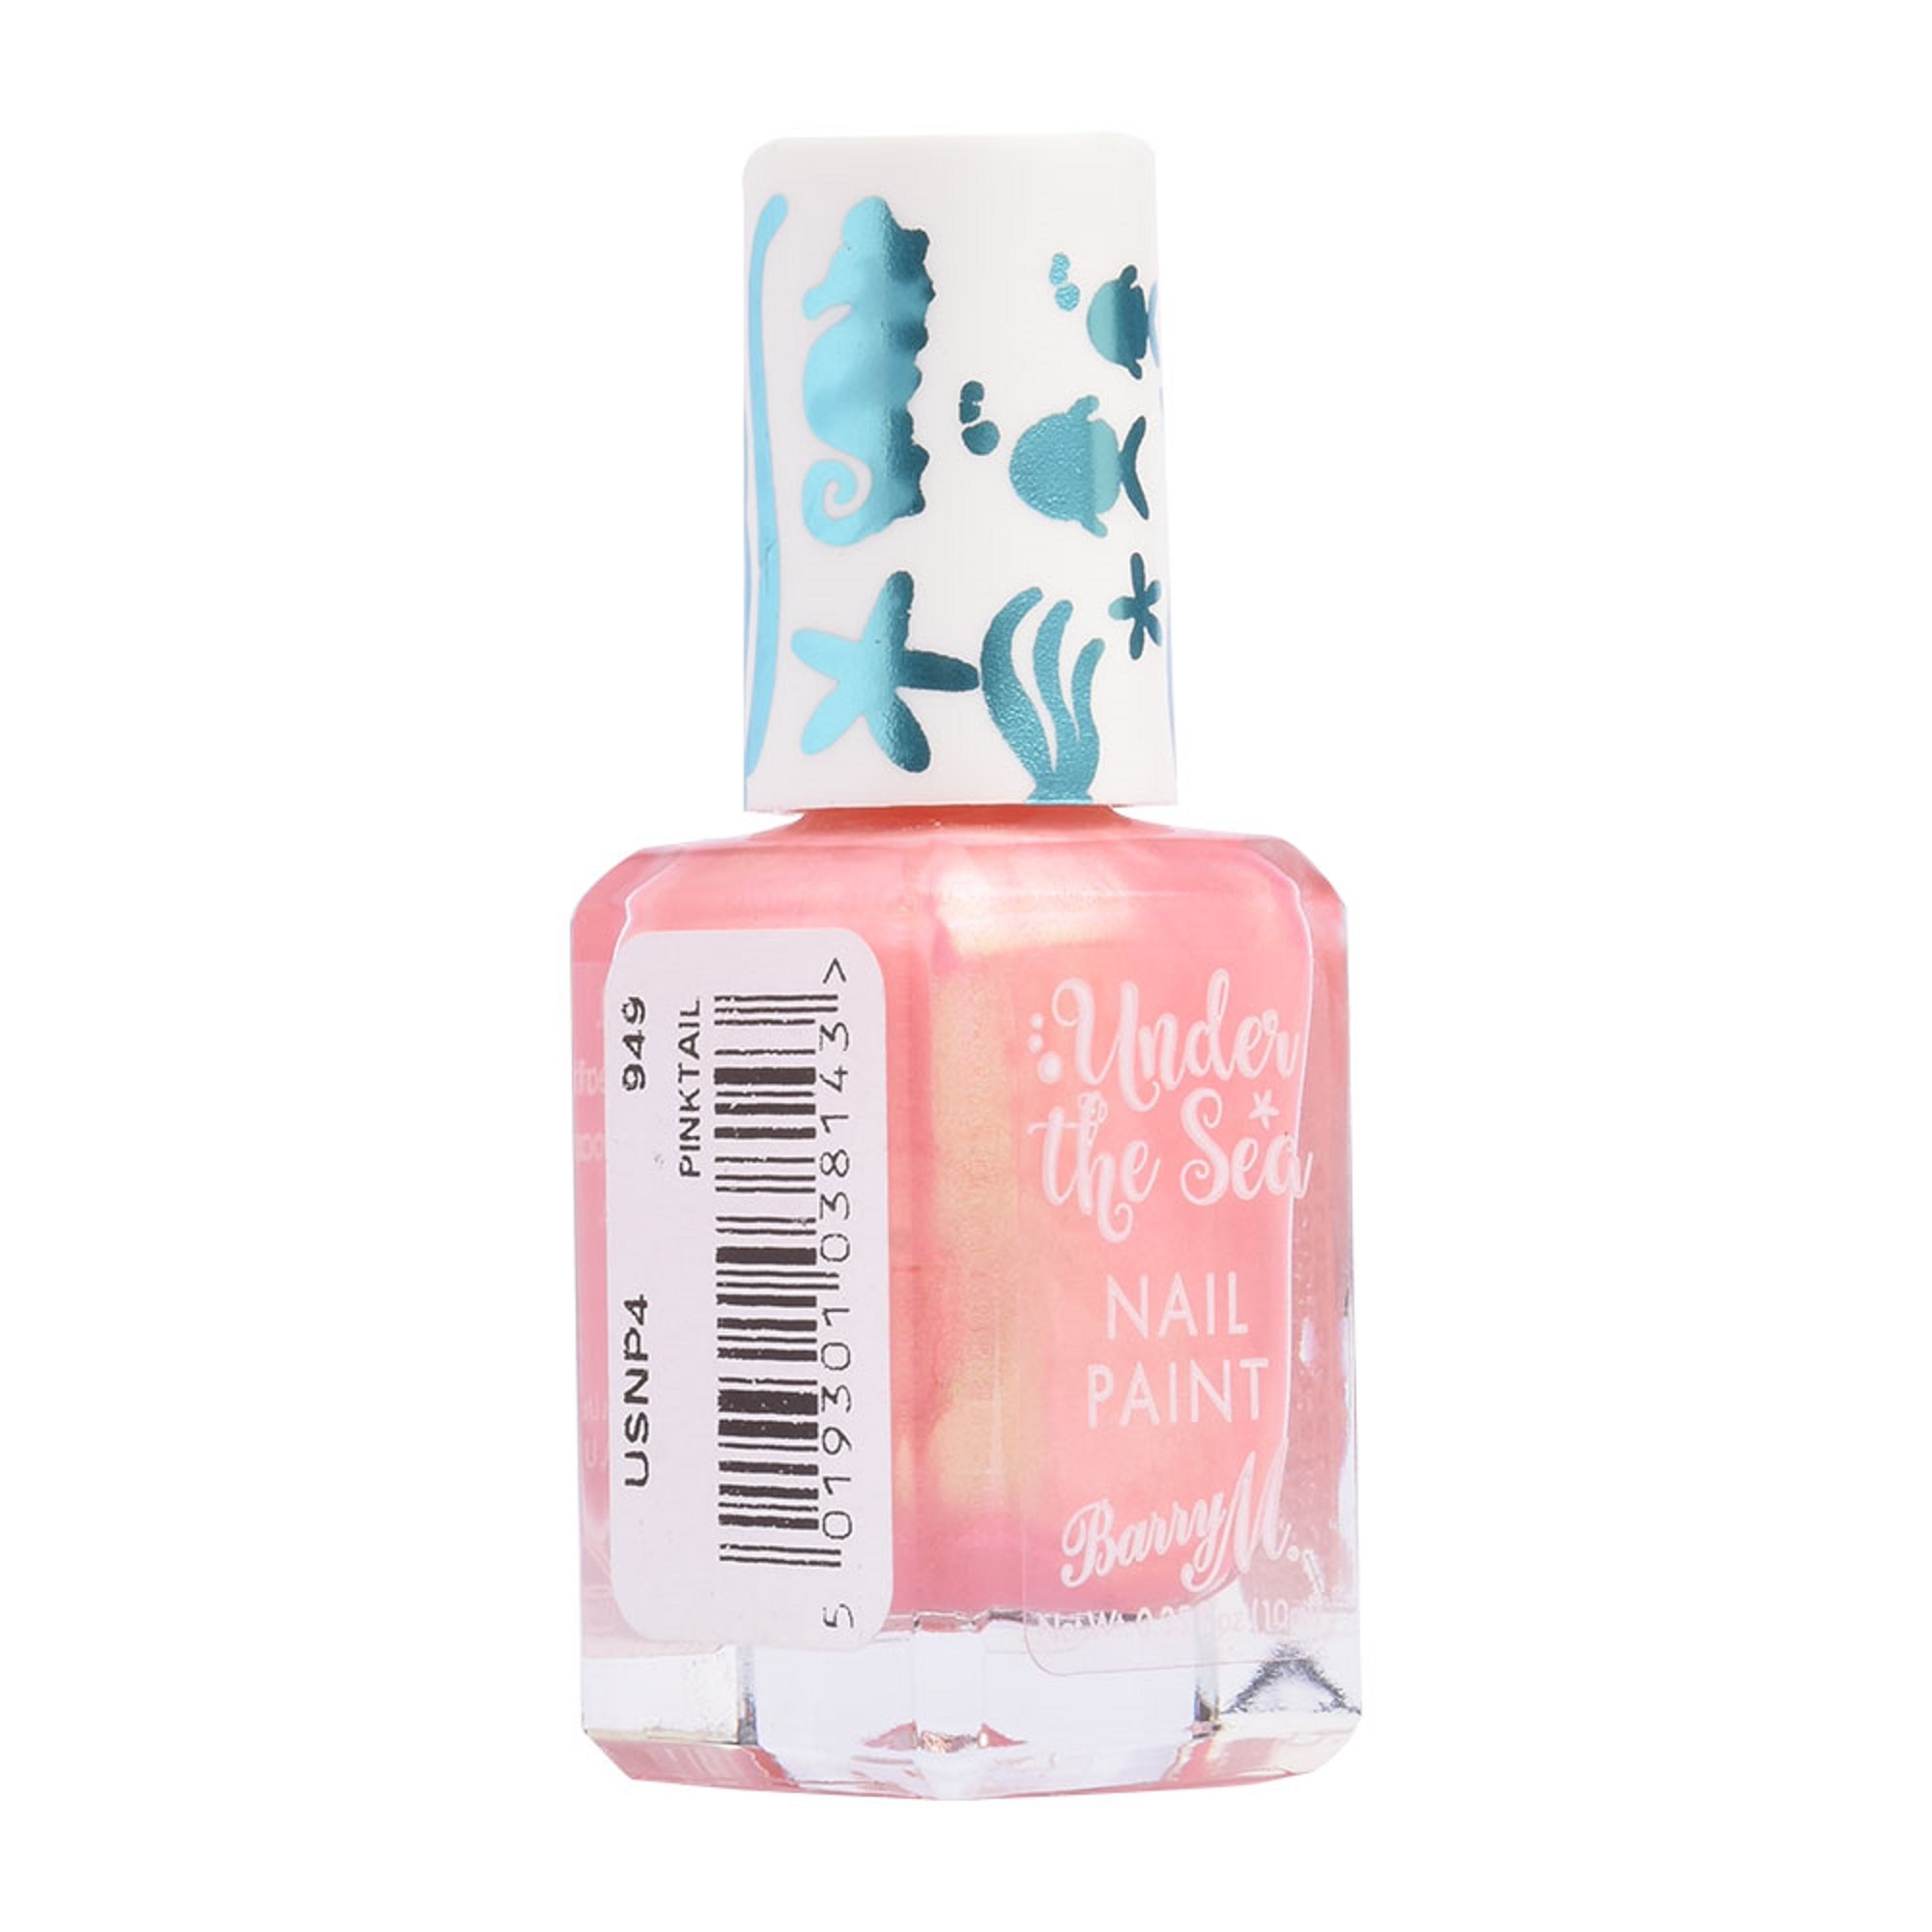 BARRY MUnder the Sea Pinktail Fish Nail Paint 10ML,Nail Polish and AccessoriesWATSONS EMP. DISC.